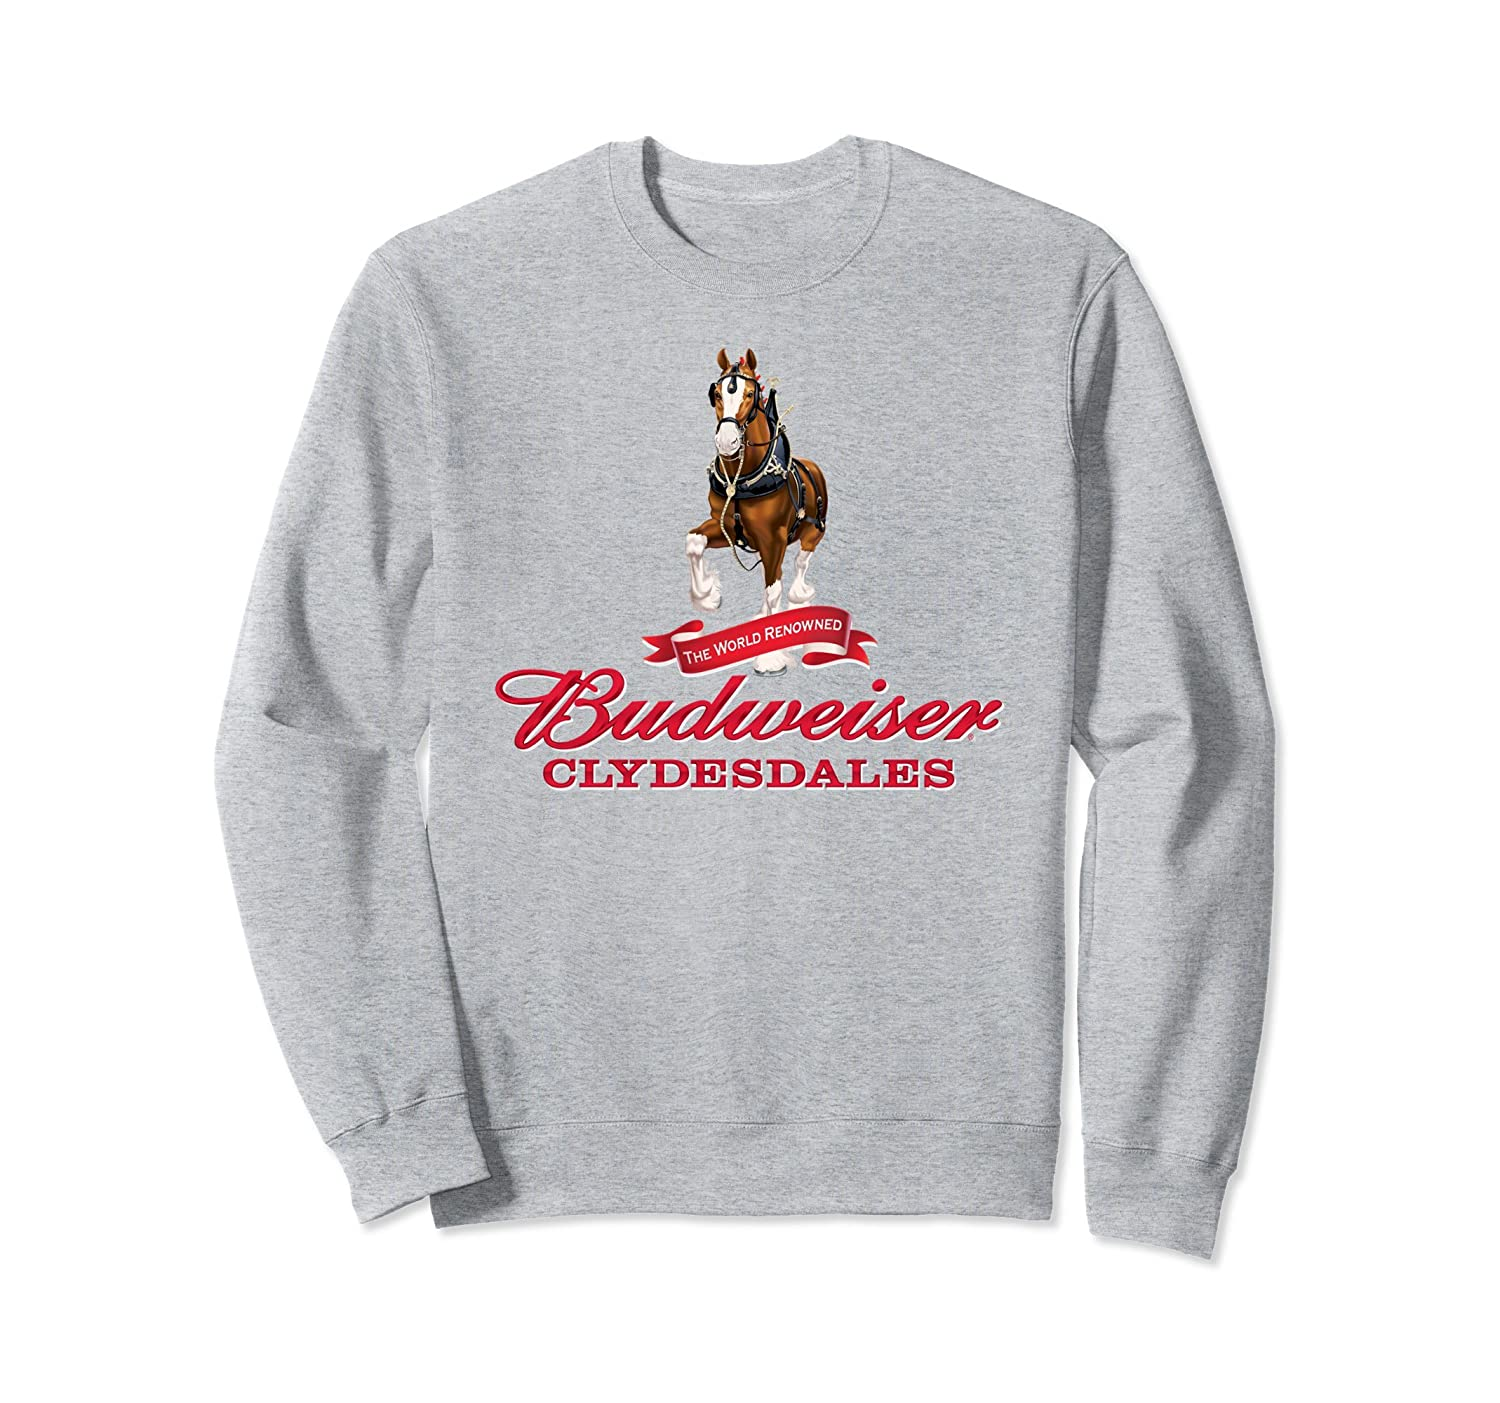 'The World Renowned Clydesdales' Sweatshirt-ln